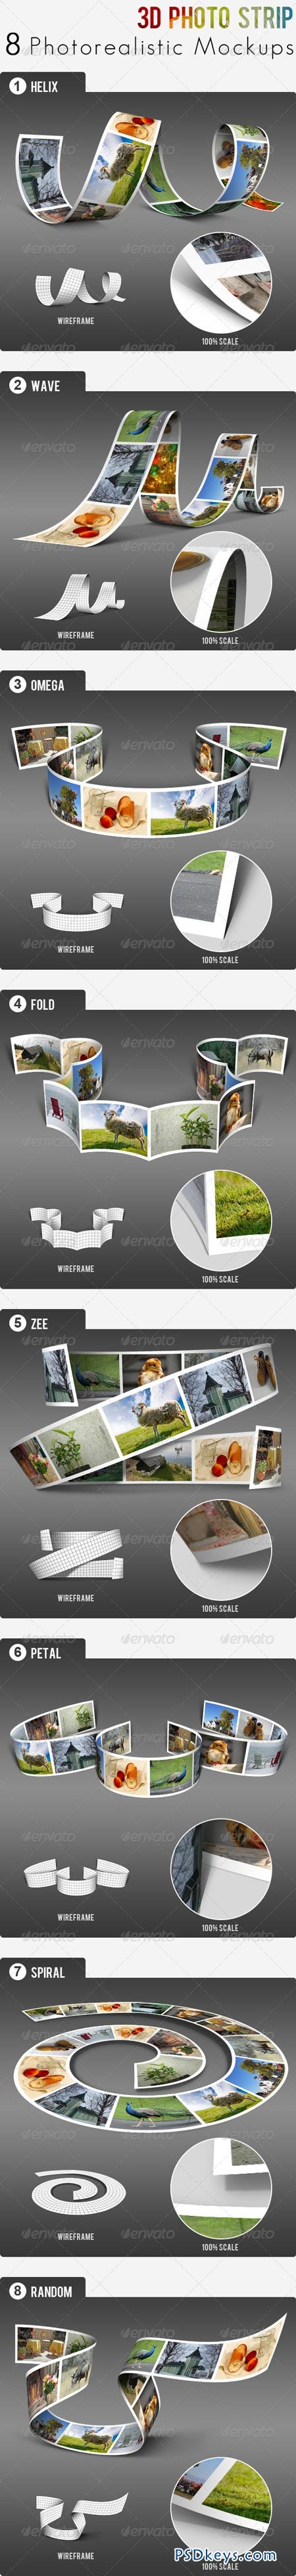 3D Photo Strip - Photorealistic Mockups 3354952